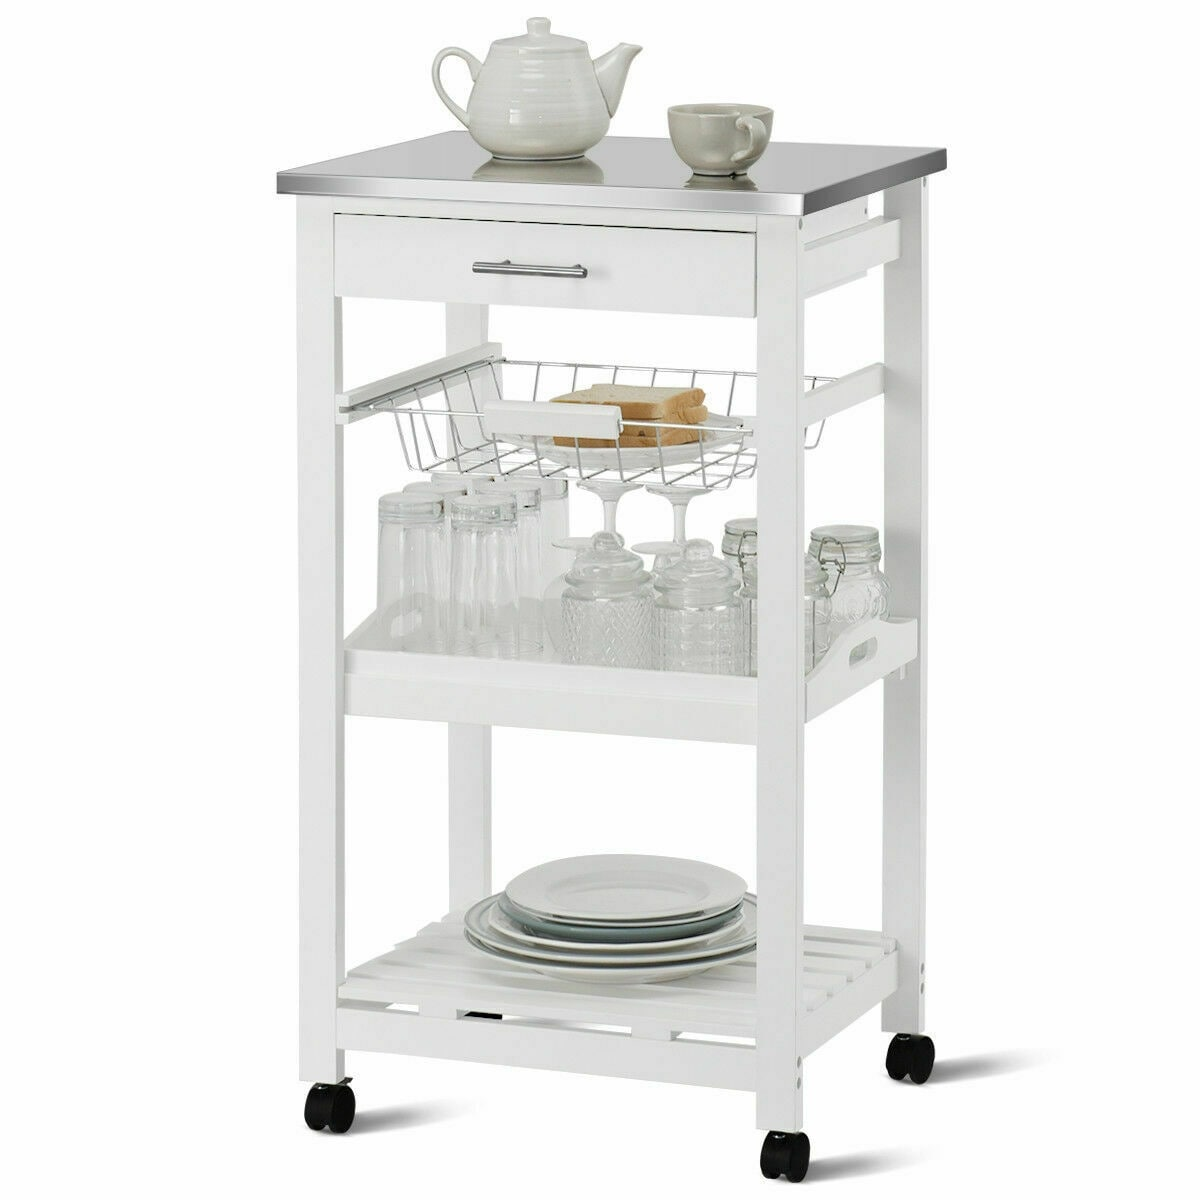 225 & Buy Wood Kitchen Carts Online at Overstock | Our Best ...